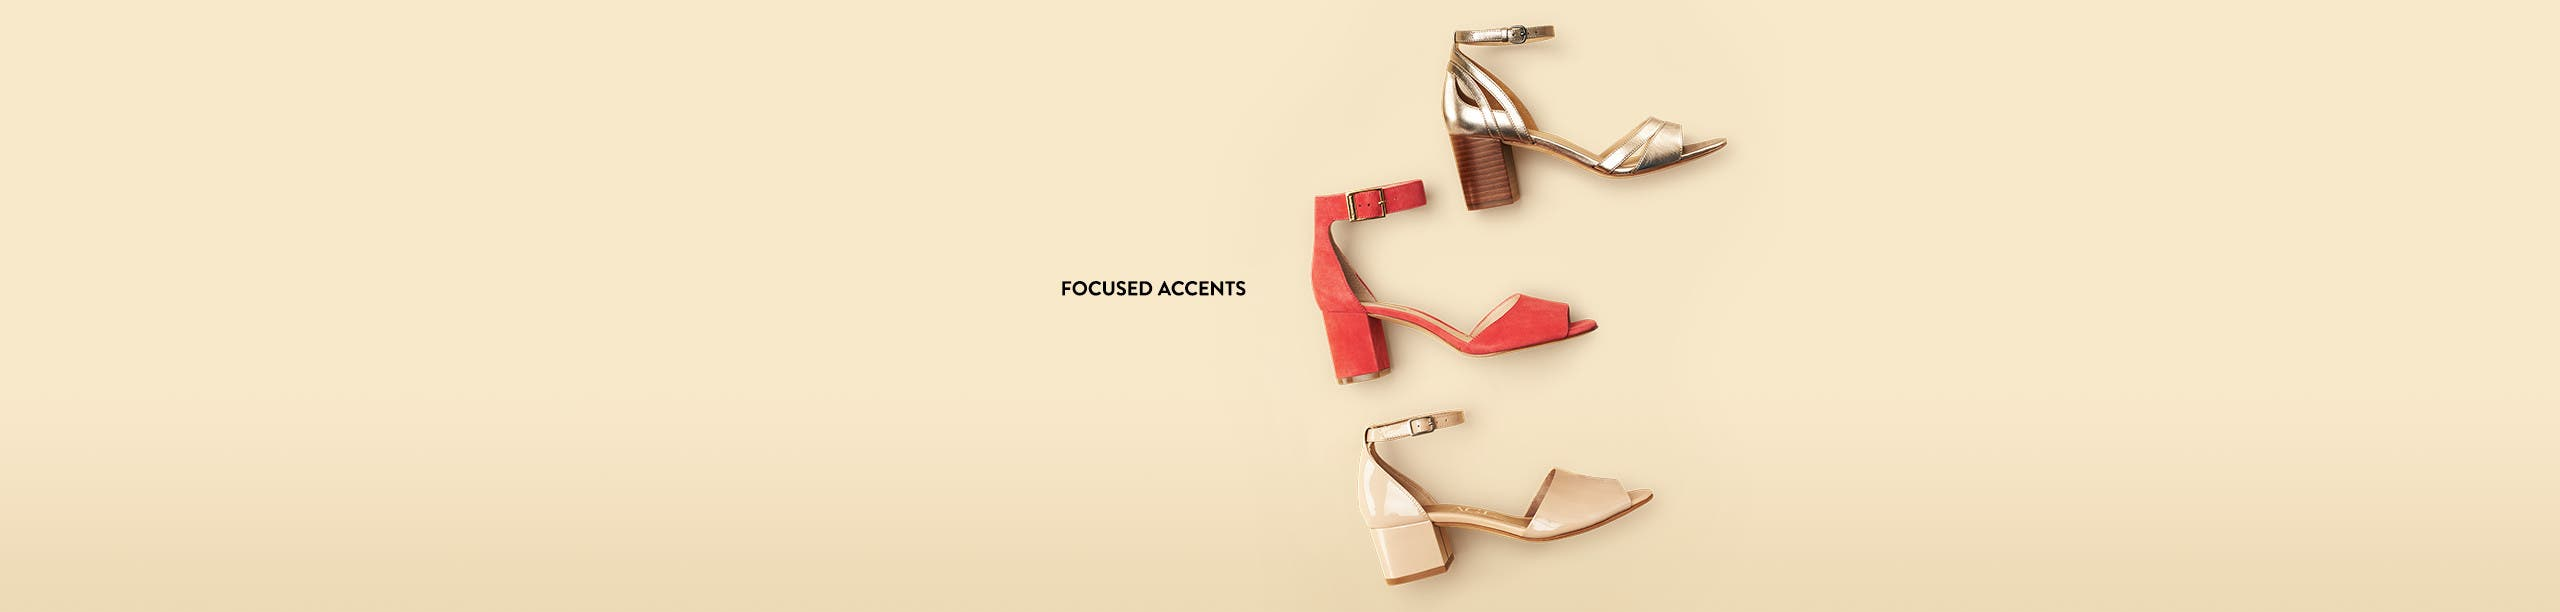 Focused accents.